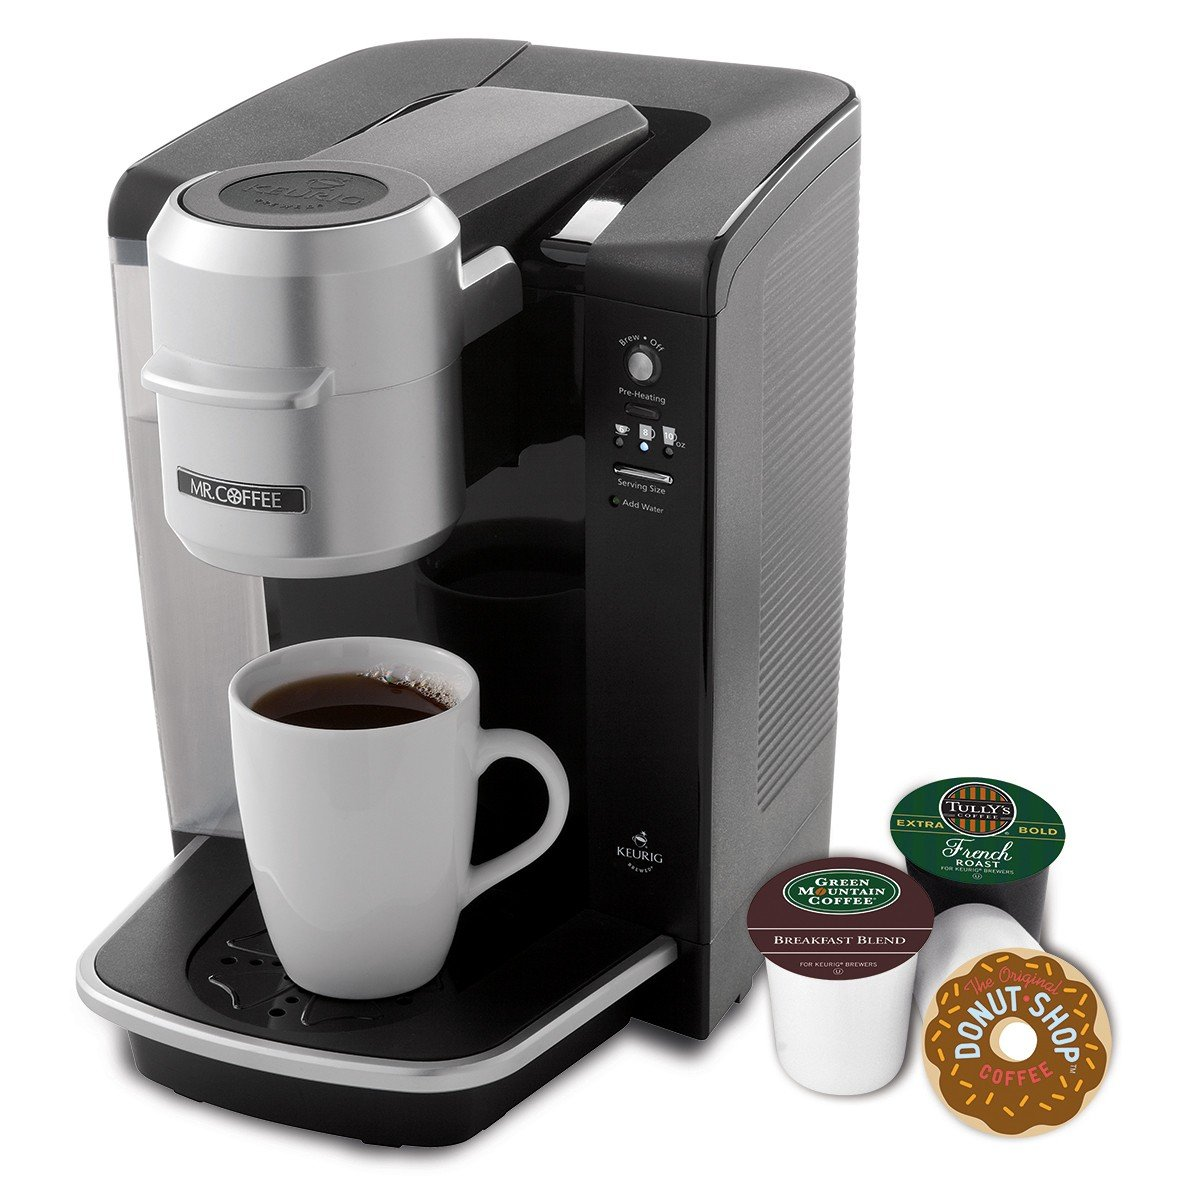 Mr. Coffee BVMC-KG6-001 Single Serve Coffee Maker